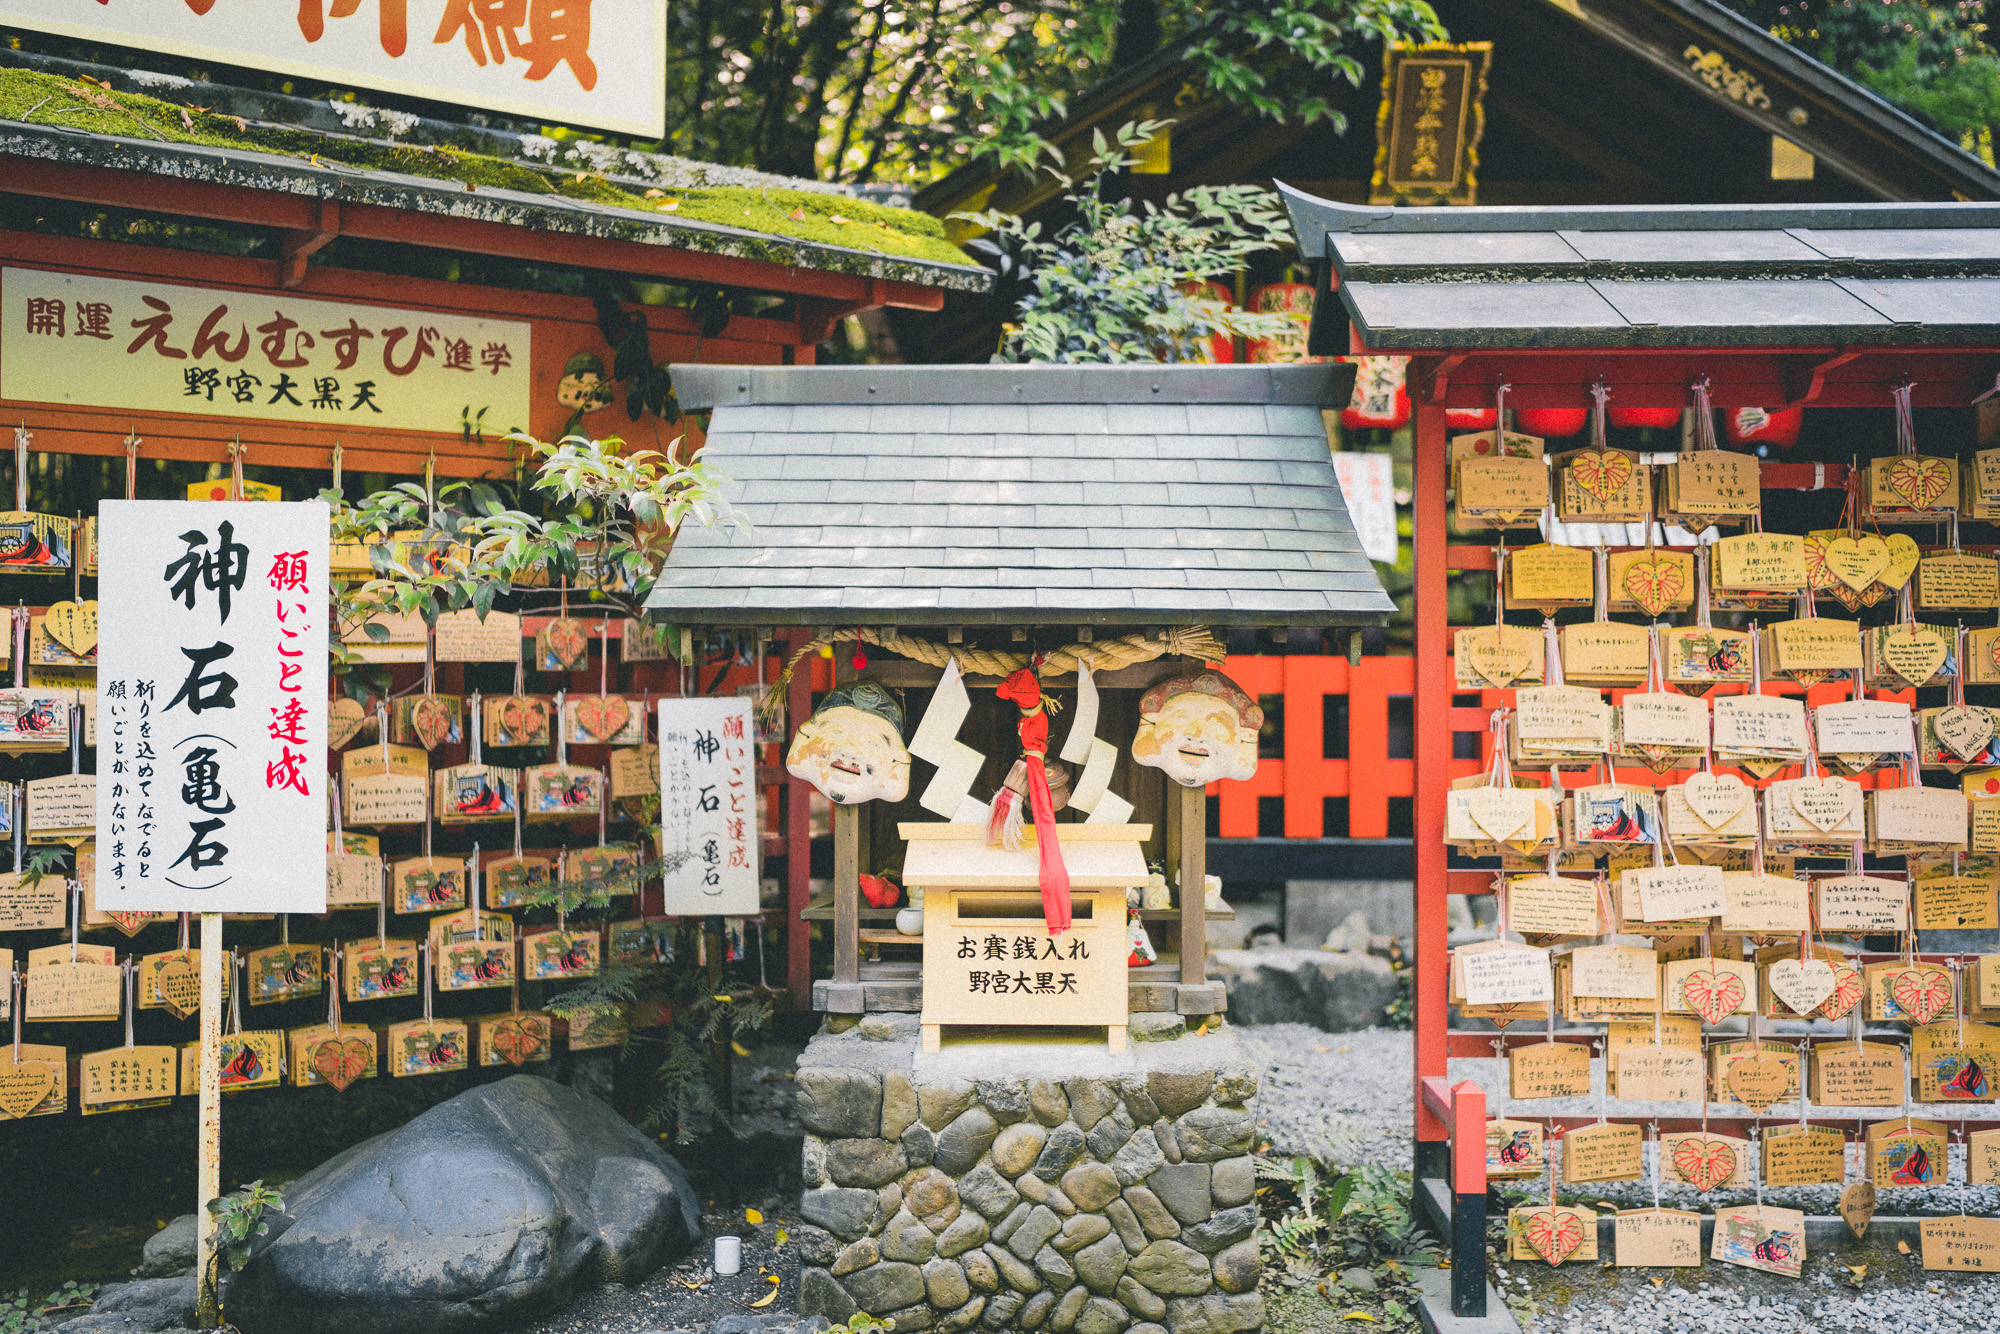 Shrines and Temples in Kyoto | 24 Hour Guide to Kyoto, Japan | 1 Day Guide Kyoto | Kyoto City Guide | Kyoto Travel Itinerary